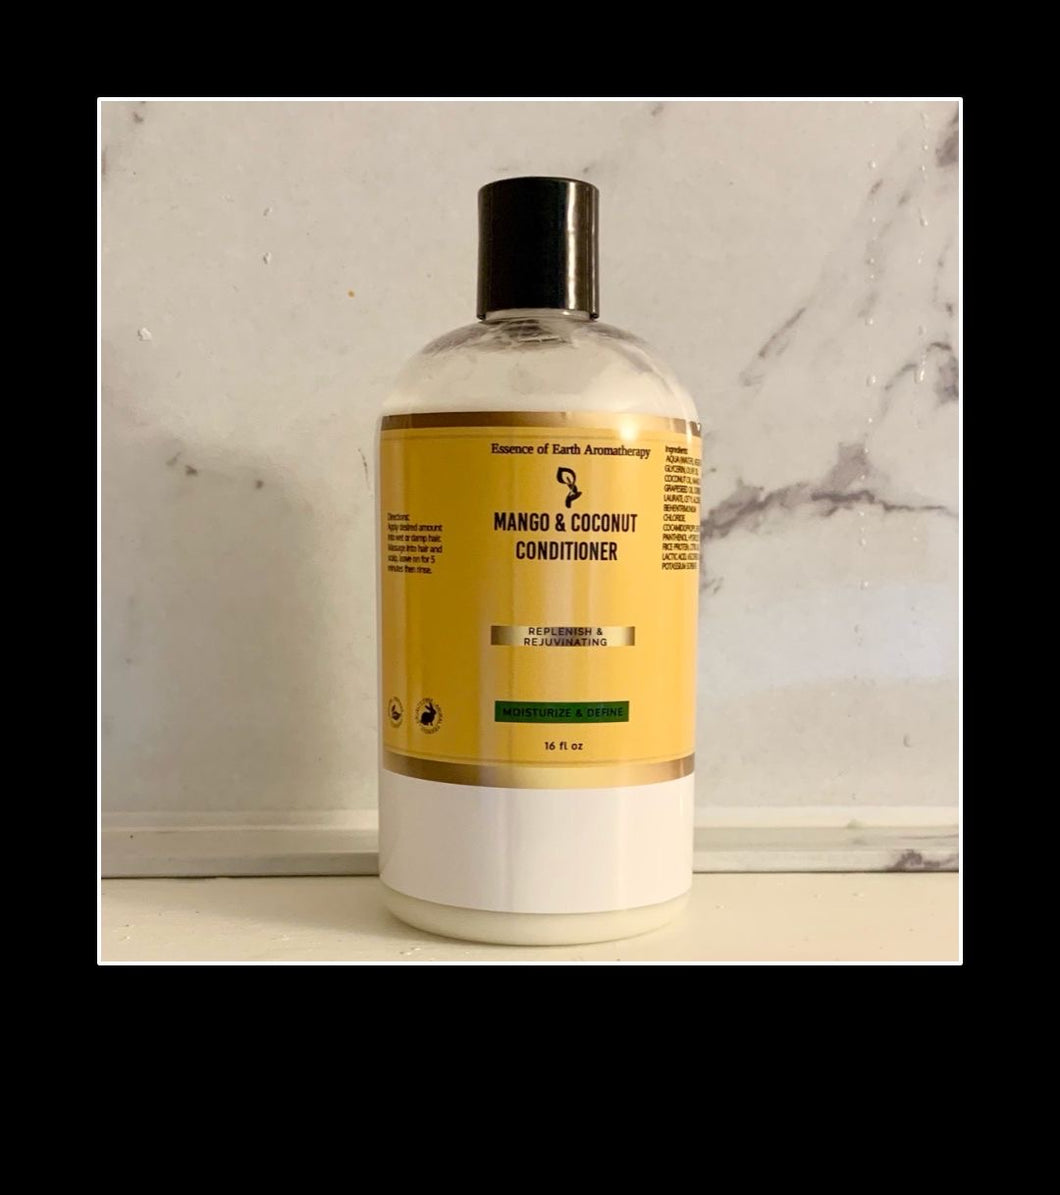 Mango & Coconut Moisturizing Conditioner